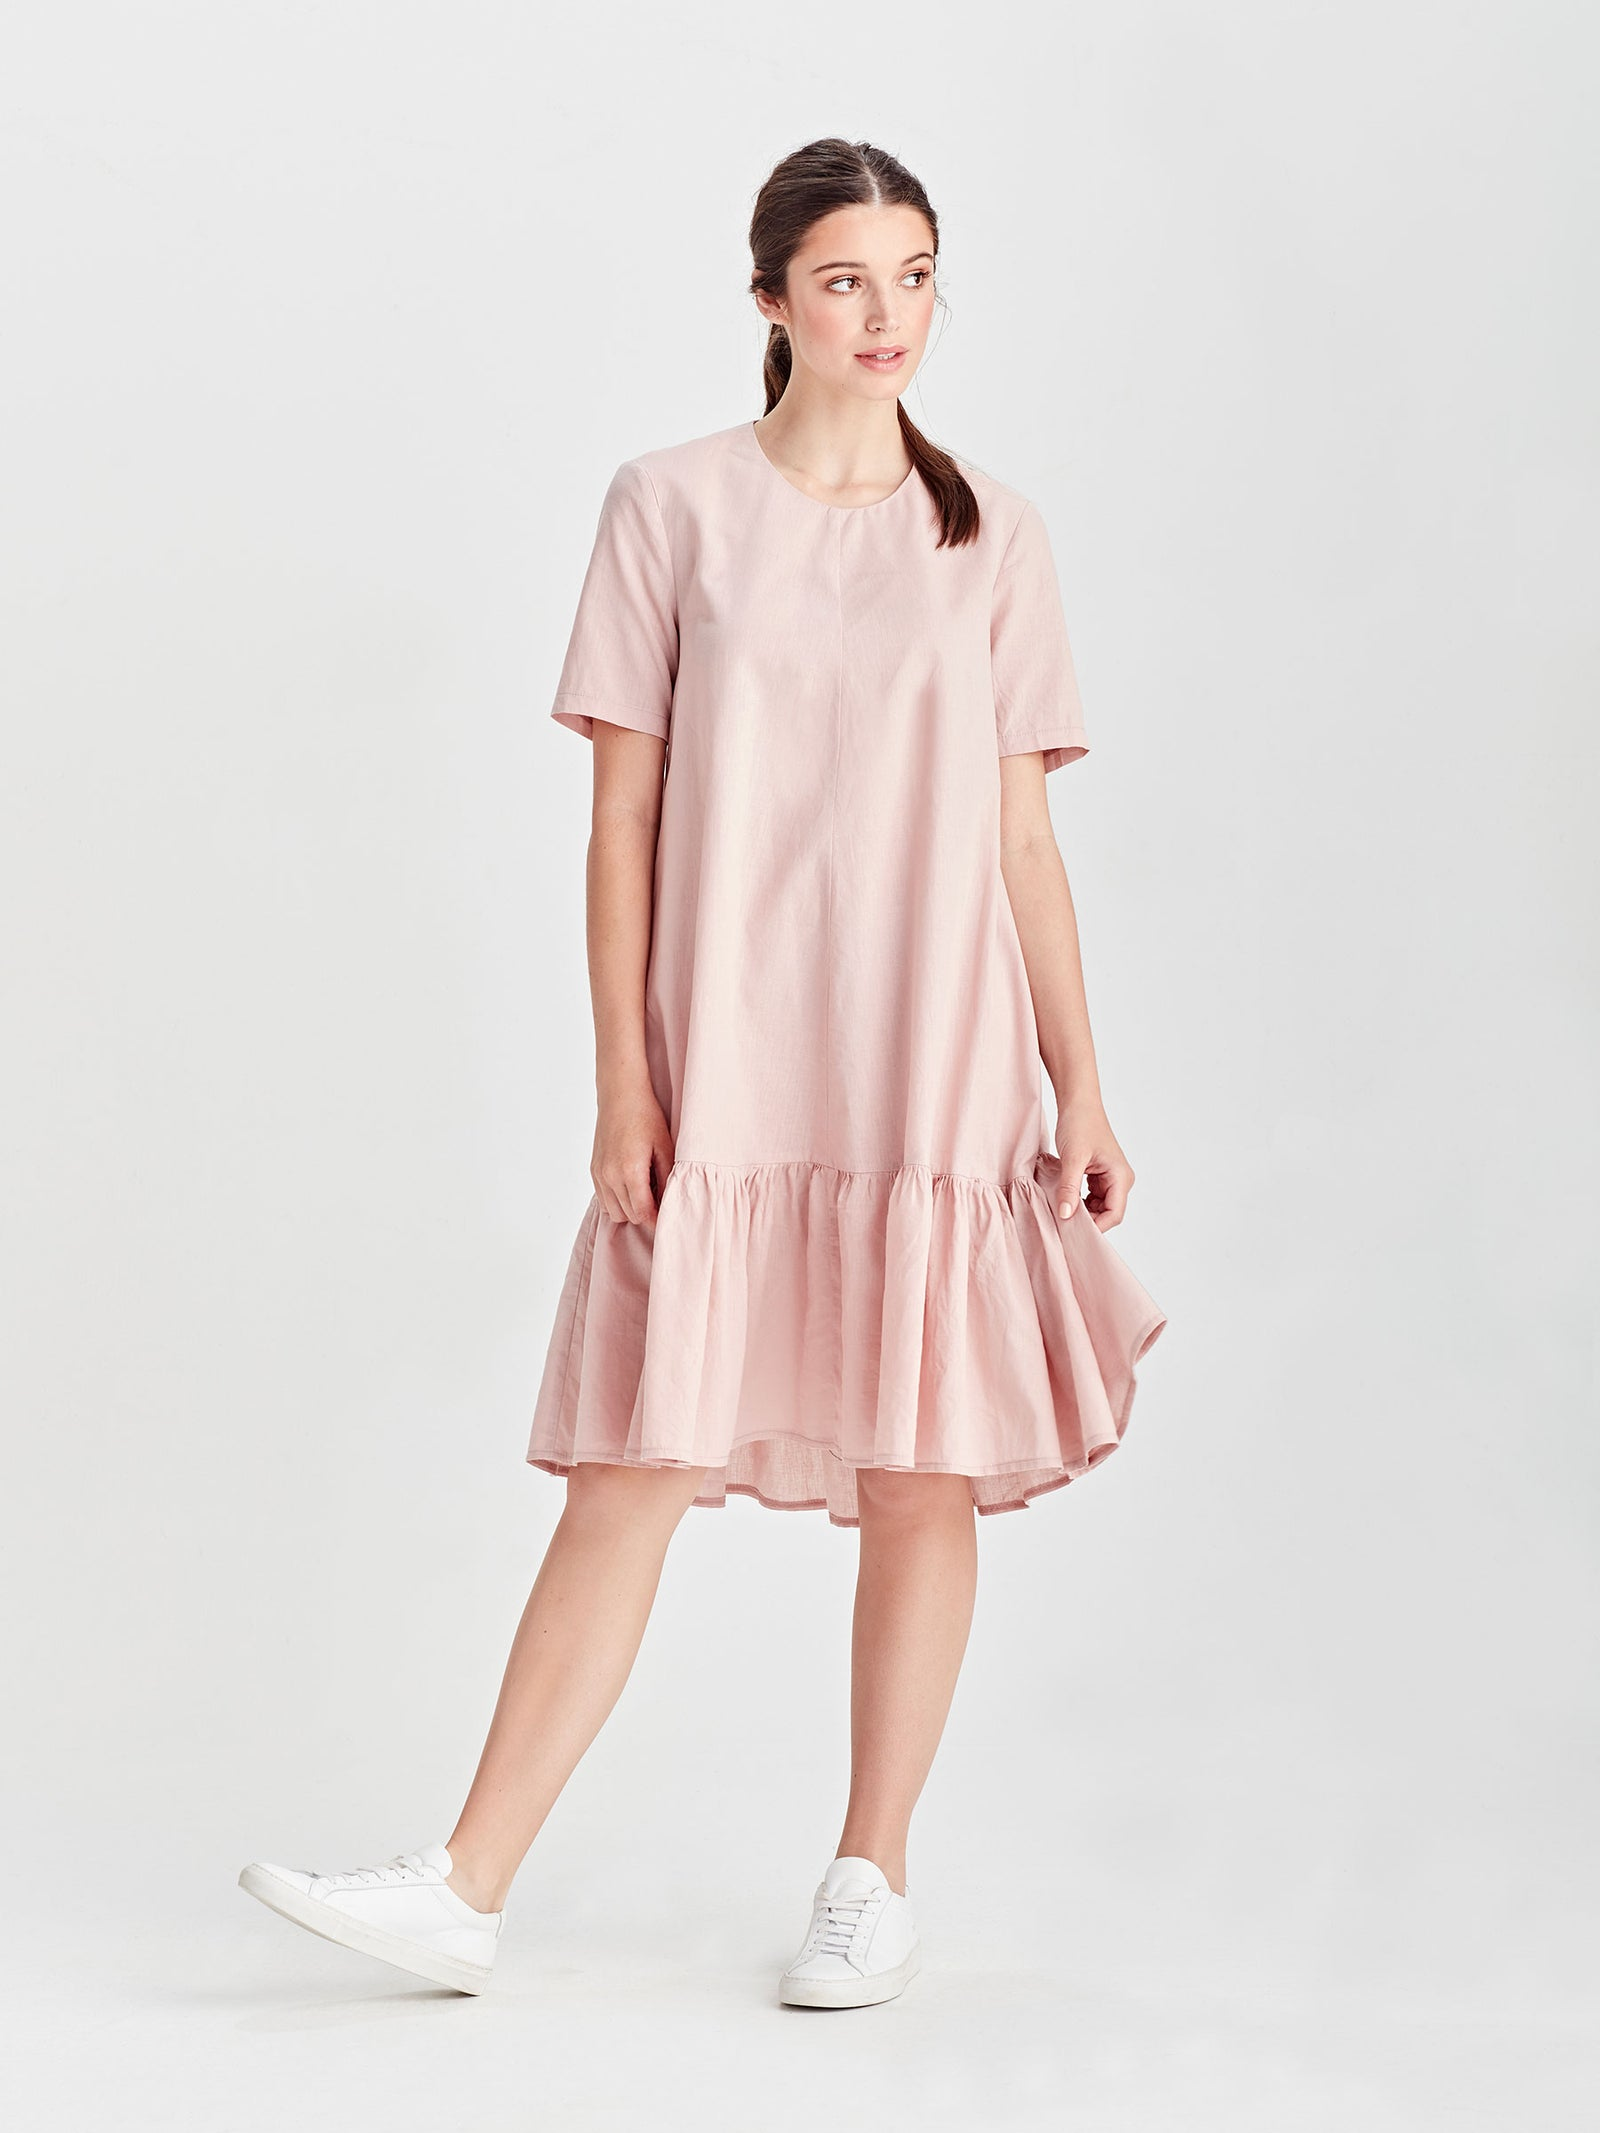 Ela Dress (Light Linen Cotton) Rose